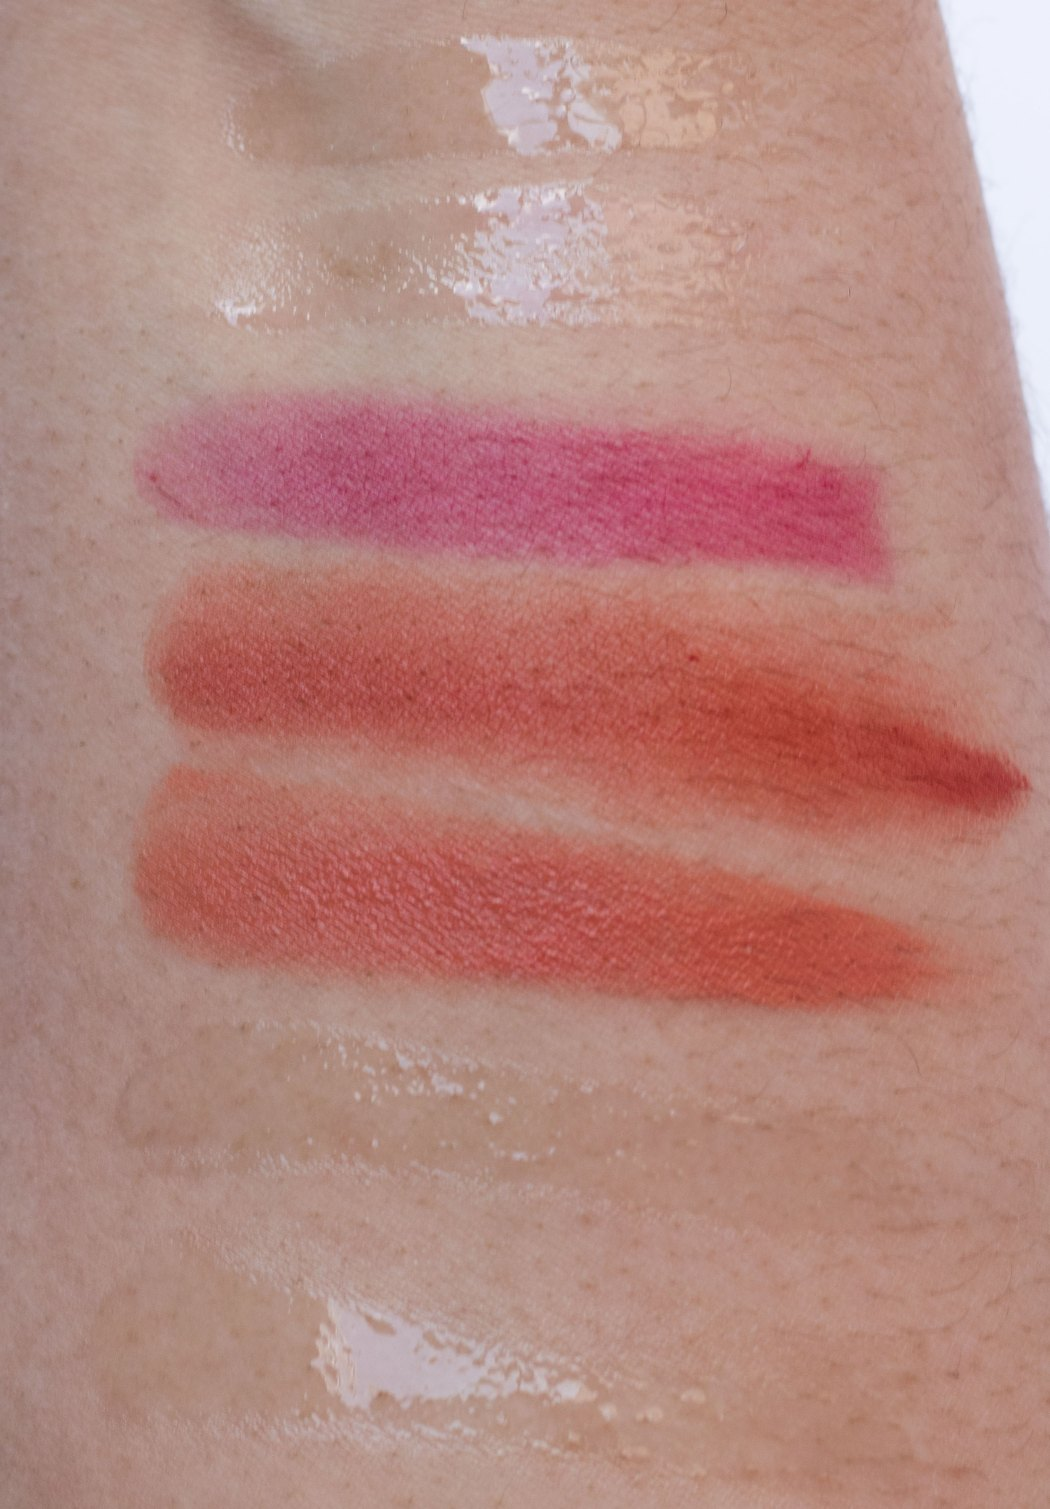 Swatches top to bottom: Glossier Lip Gloss, Dior Lip Maximizer, Glossier Gen G lipstick in Crush, Noto Botanics tint, Herbivore Botanicals Coco Rose Lip Tint, Kopari Coconut Lip Love, Complex Beauty Pout Protector vanilla lip mask